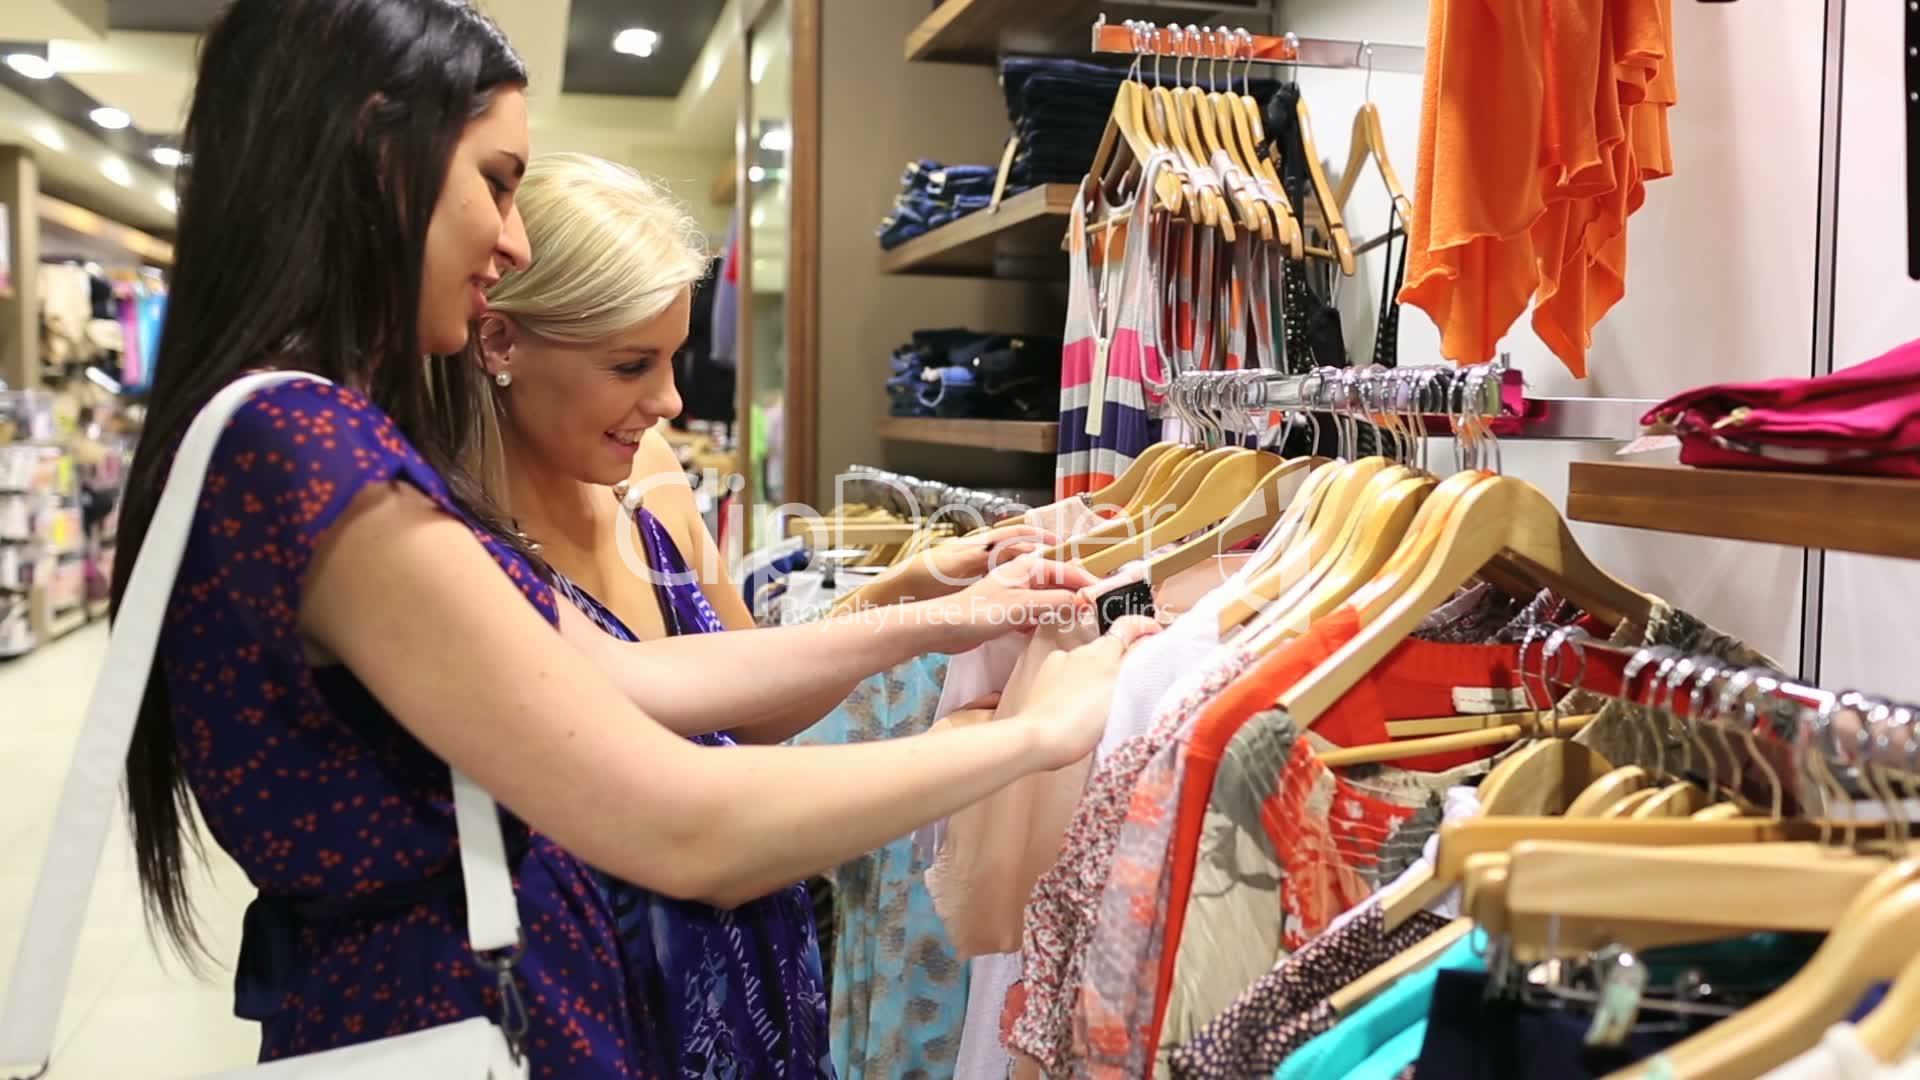 Image result for shopping with friends hd images